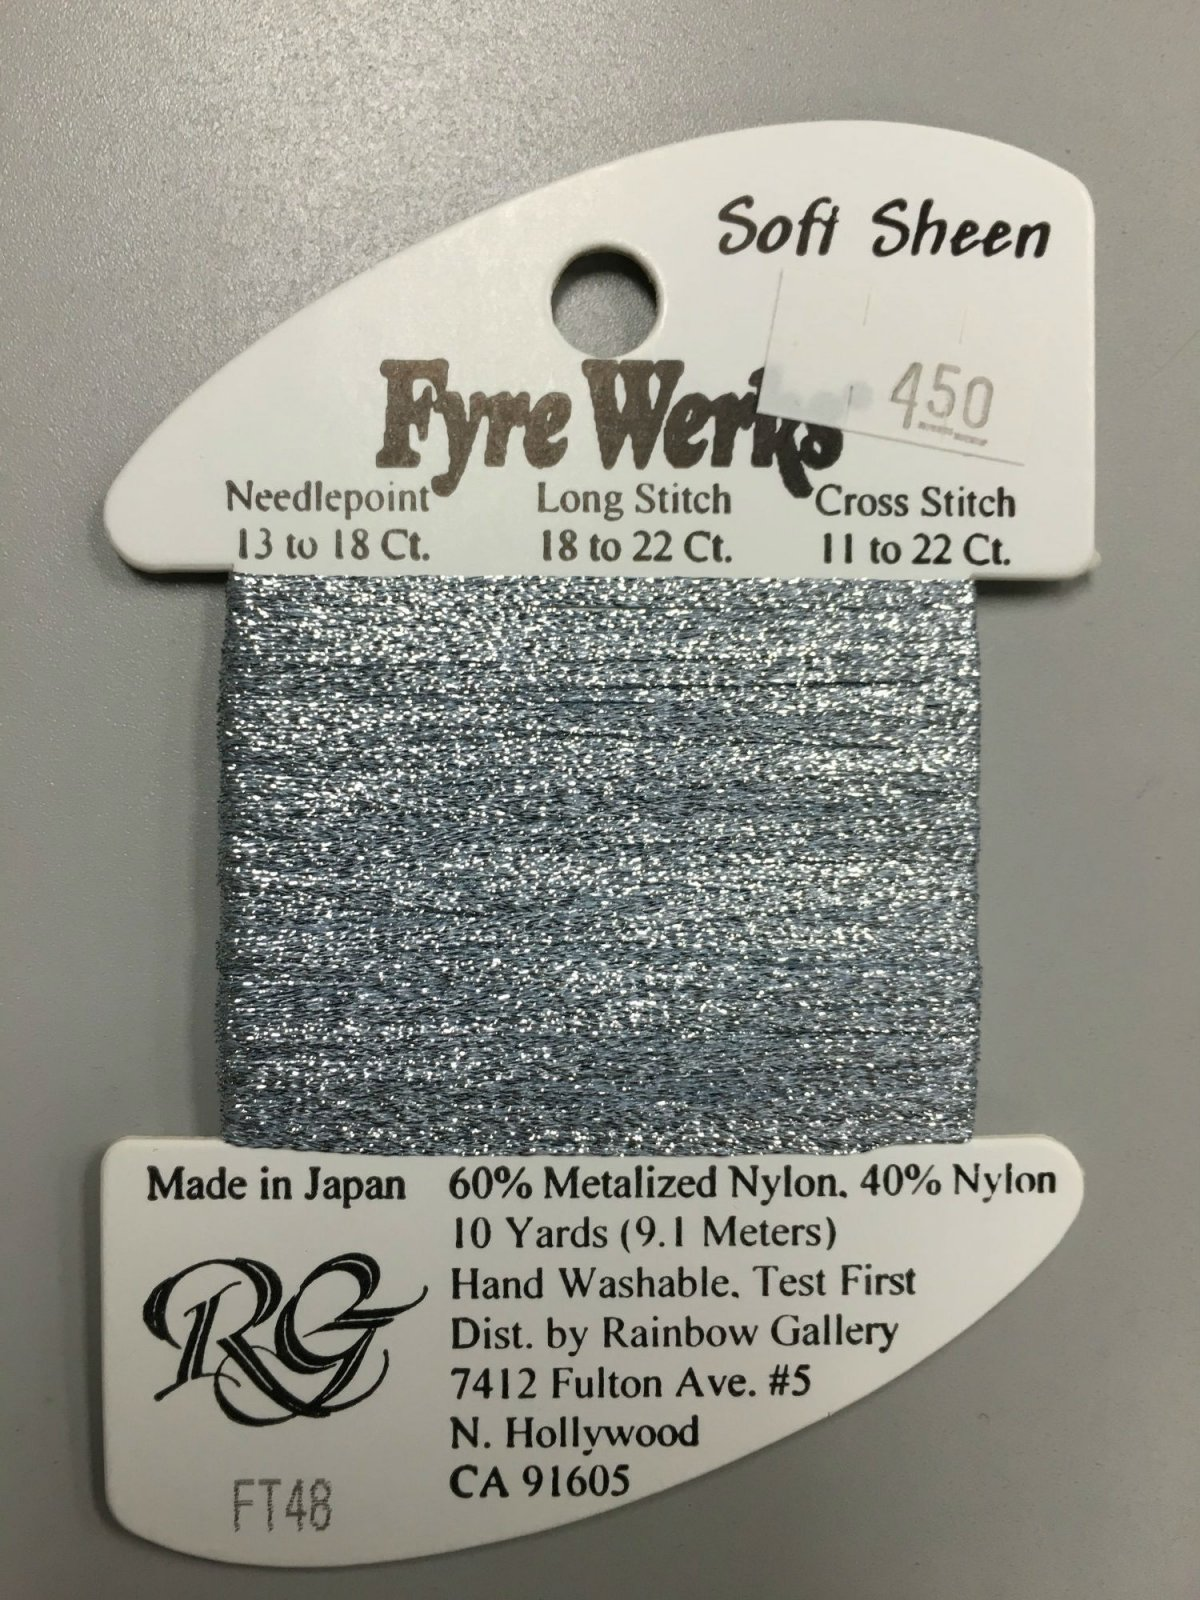 Fyre Werks Soft Sheen FT48